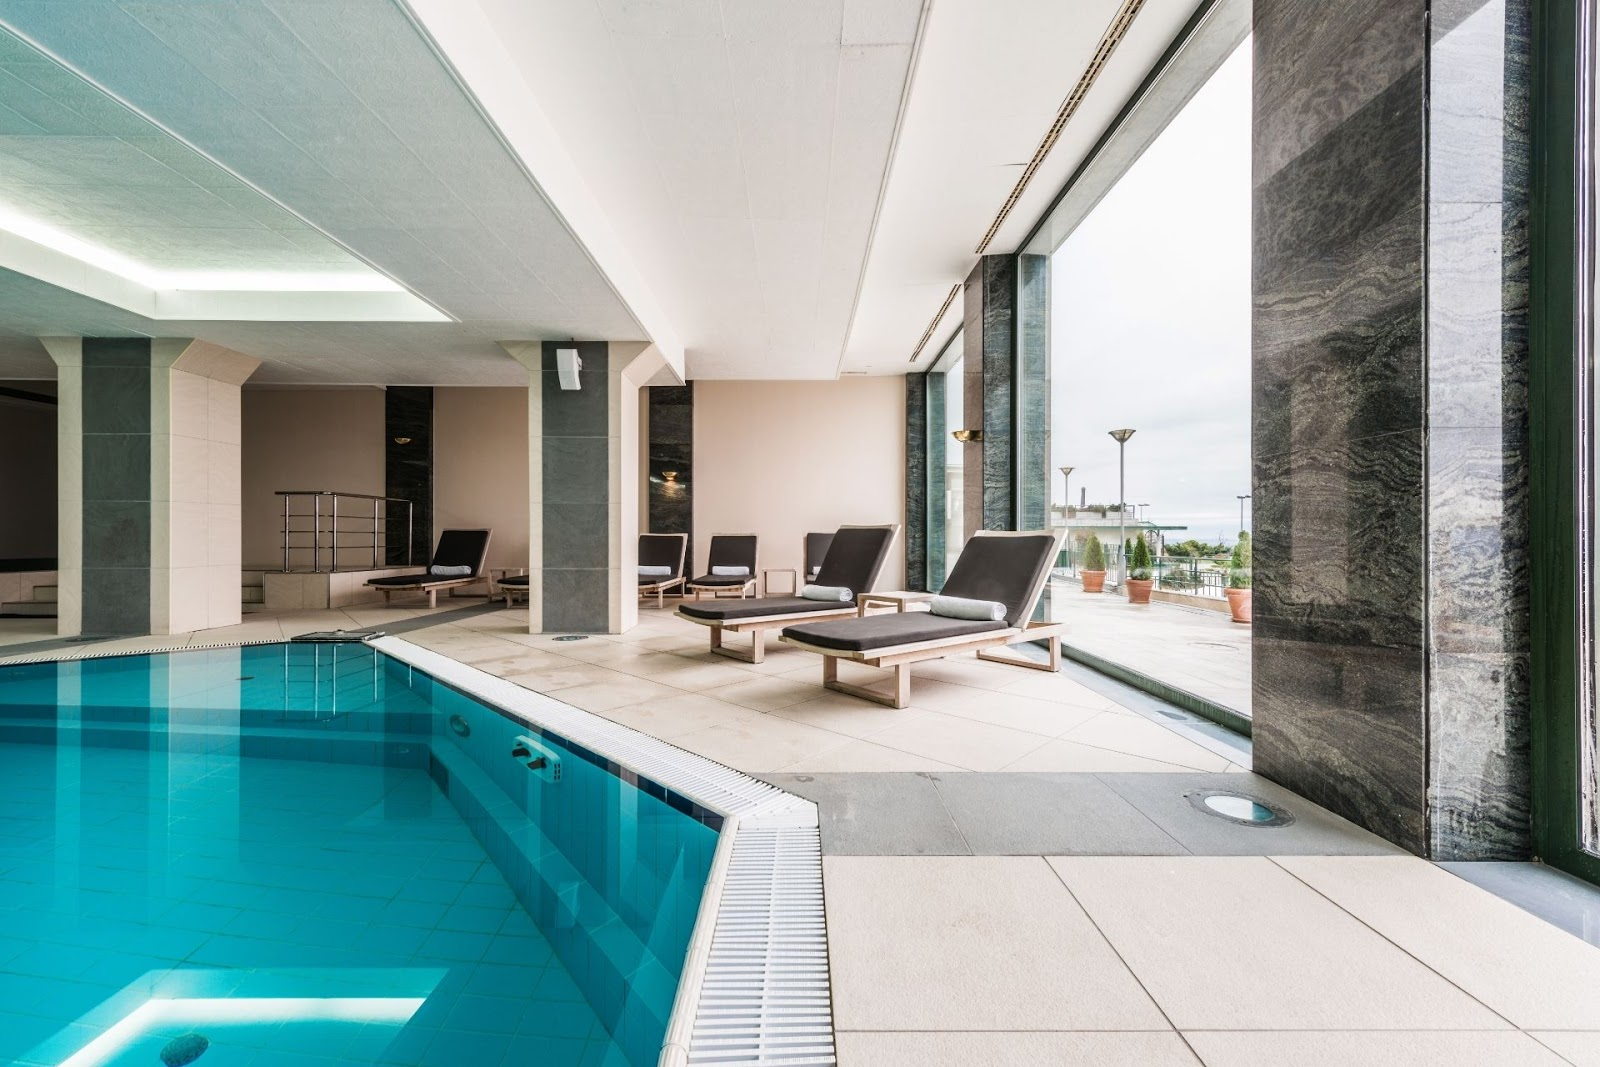 chairs by a luxury swimming pool